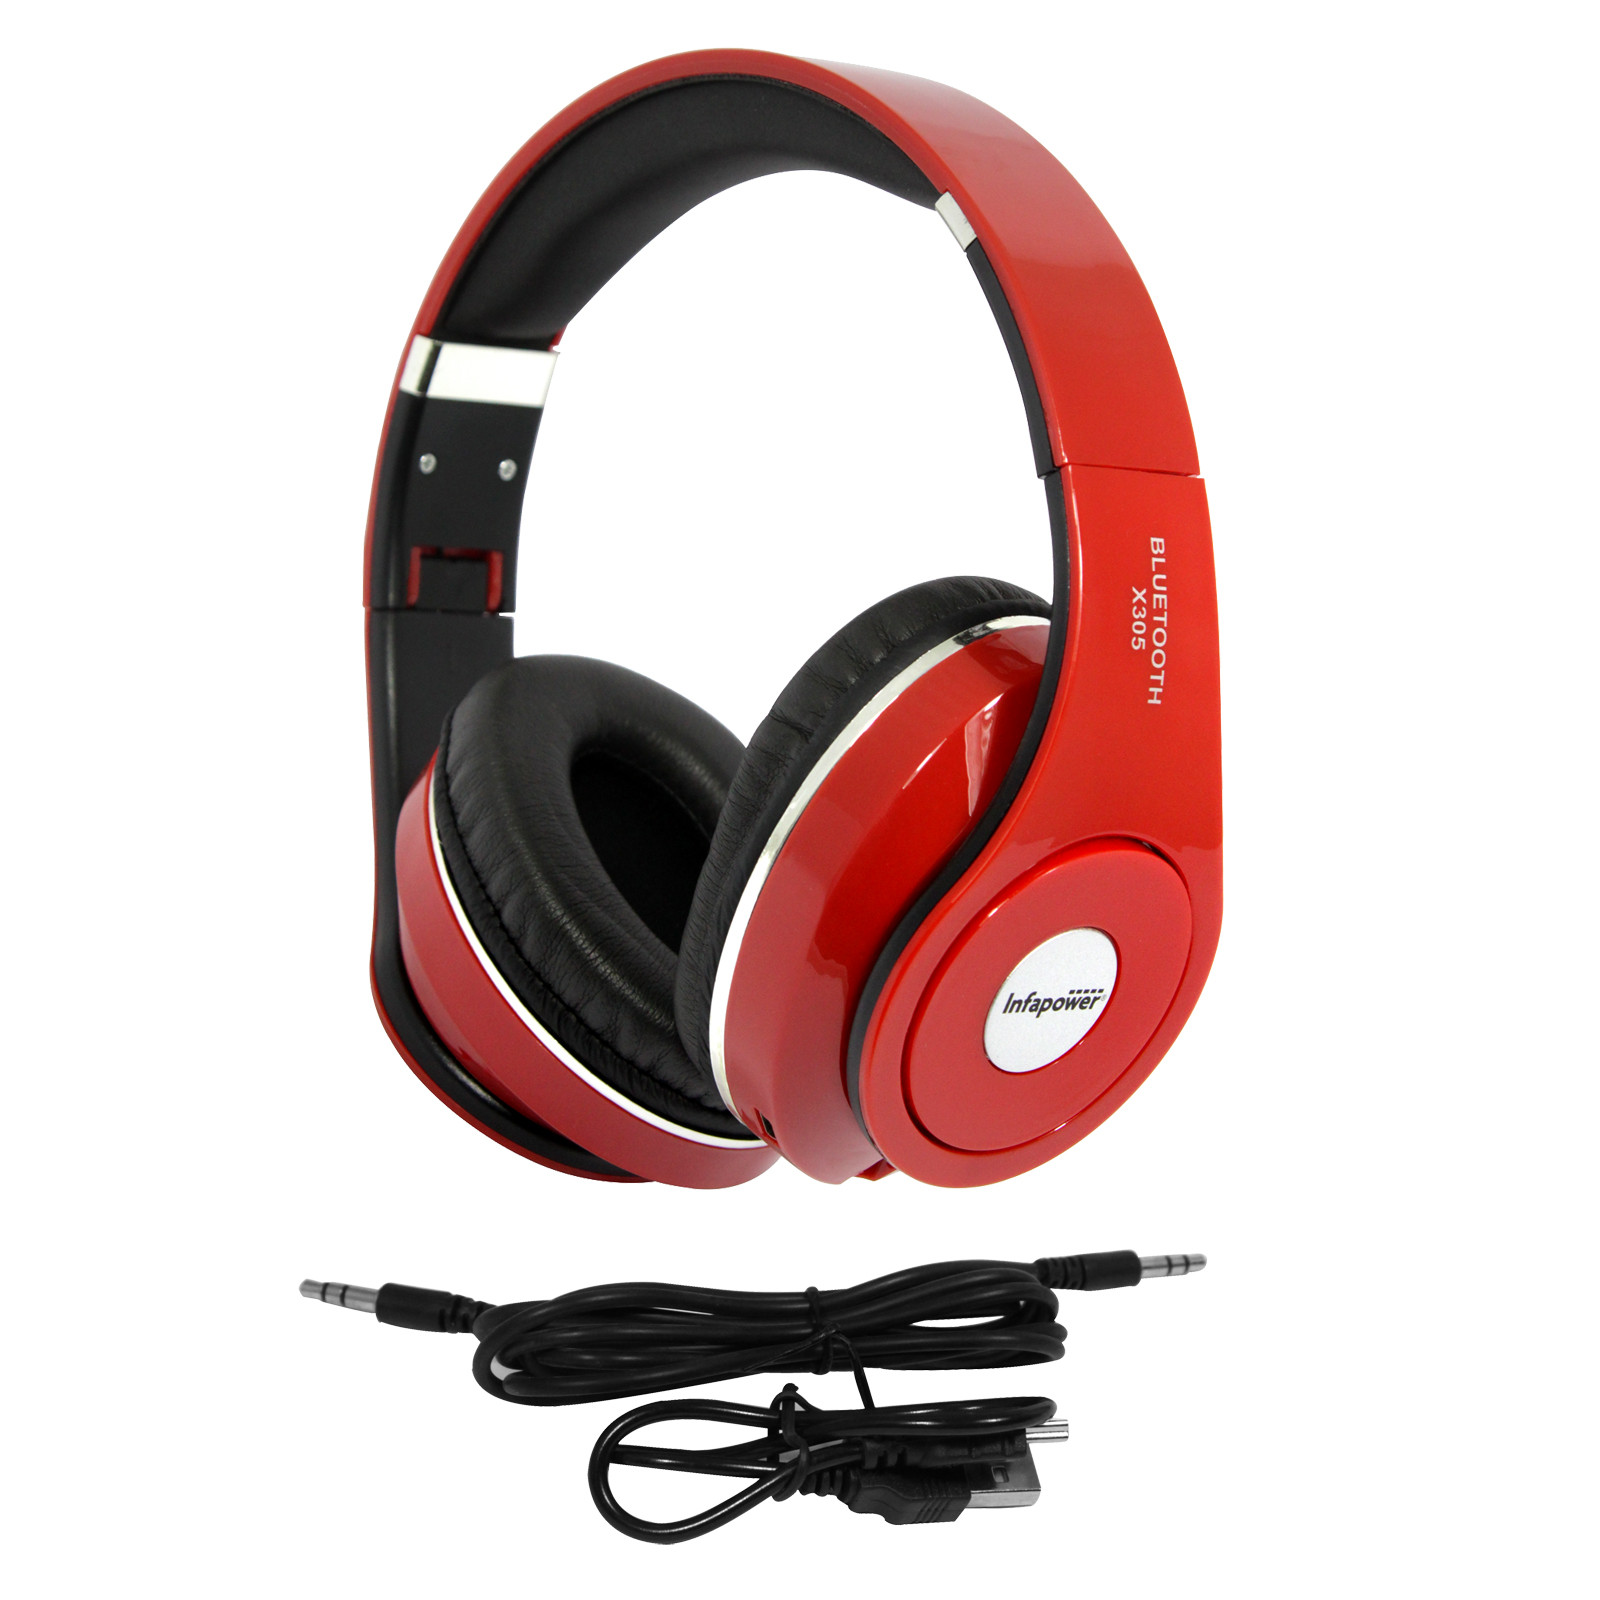 INFAPOWER X305 STEREO HEADPHONES BLUETOOTH WIRELESS RED